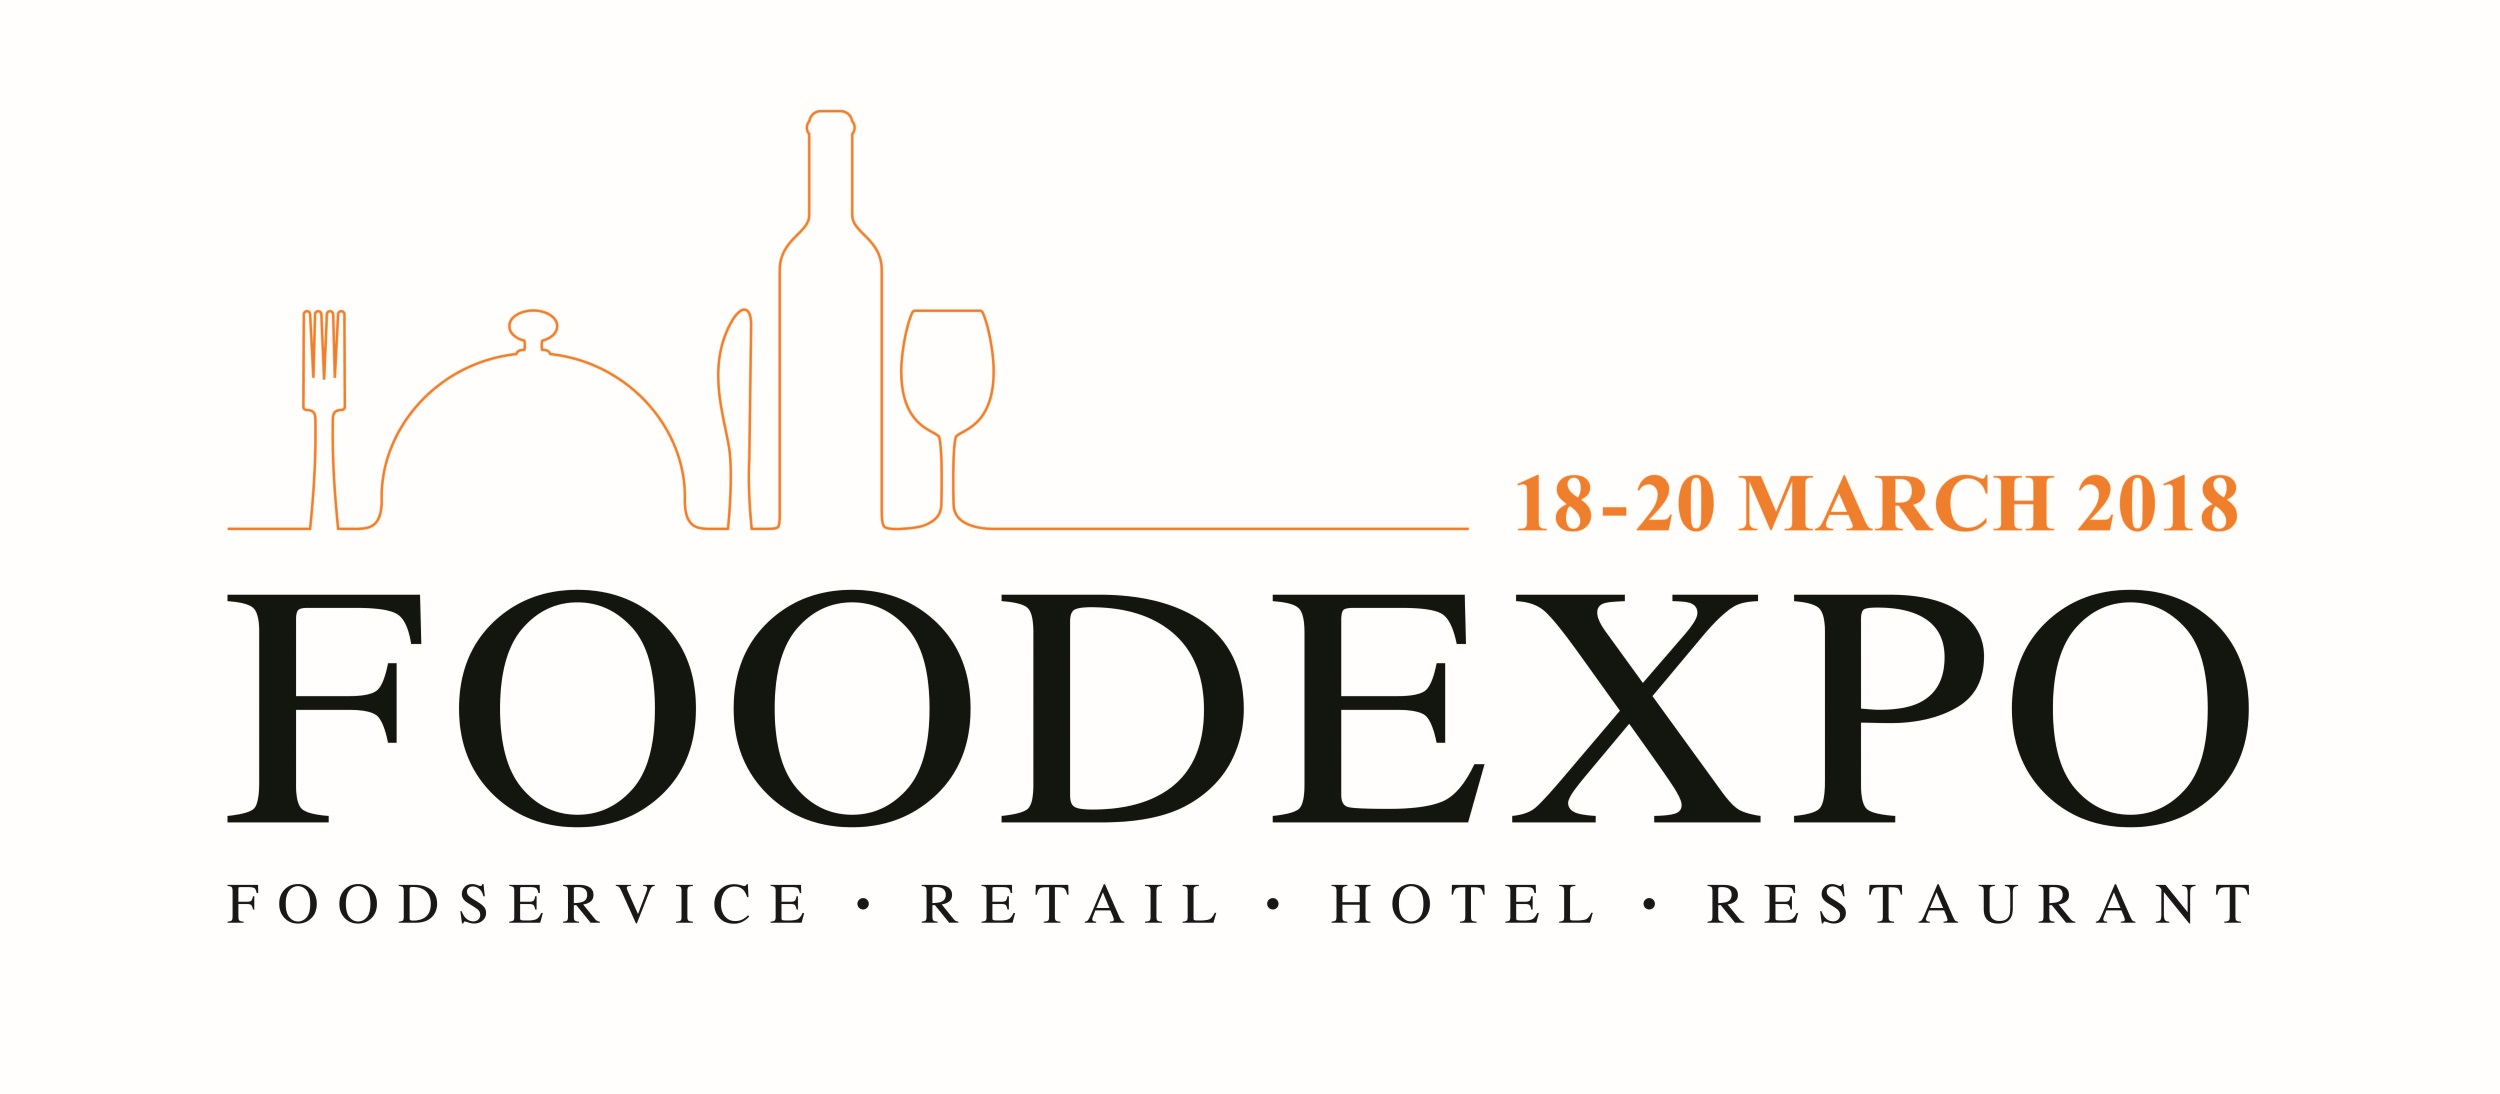 ScanBox Foodexpo Logo March 2018